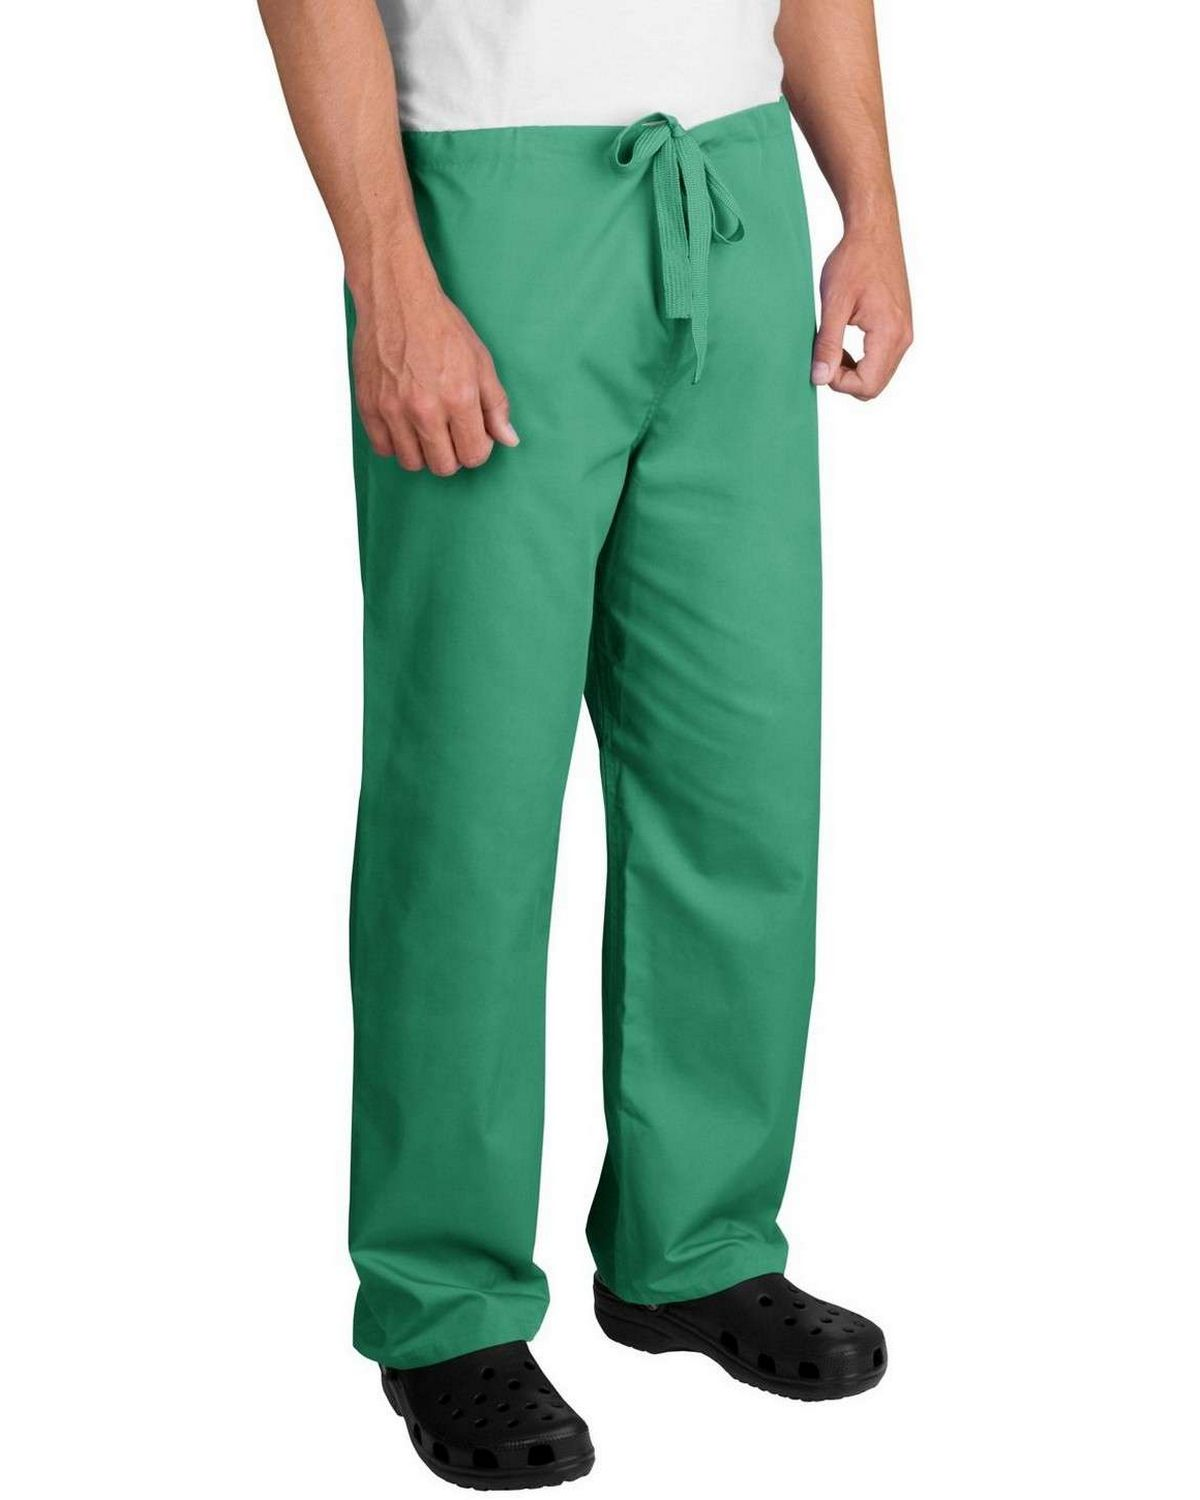 Cornerstone CS502 Reversible Scrub Pant